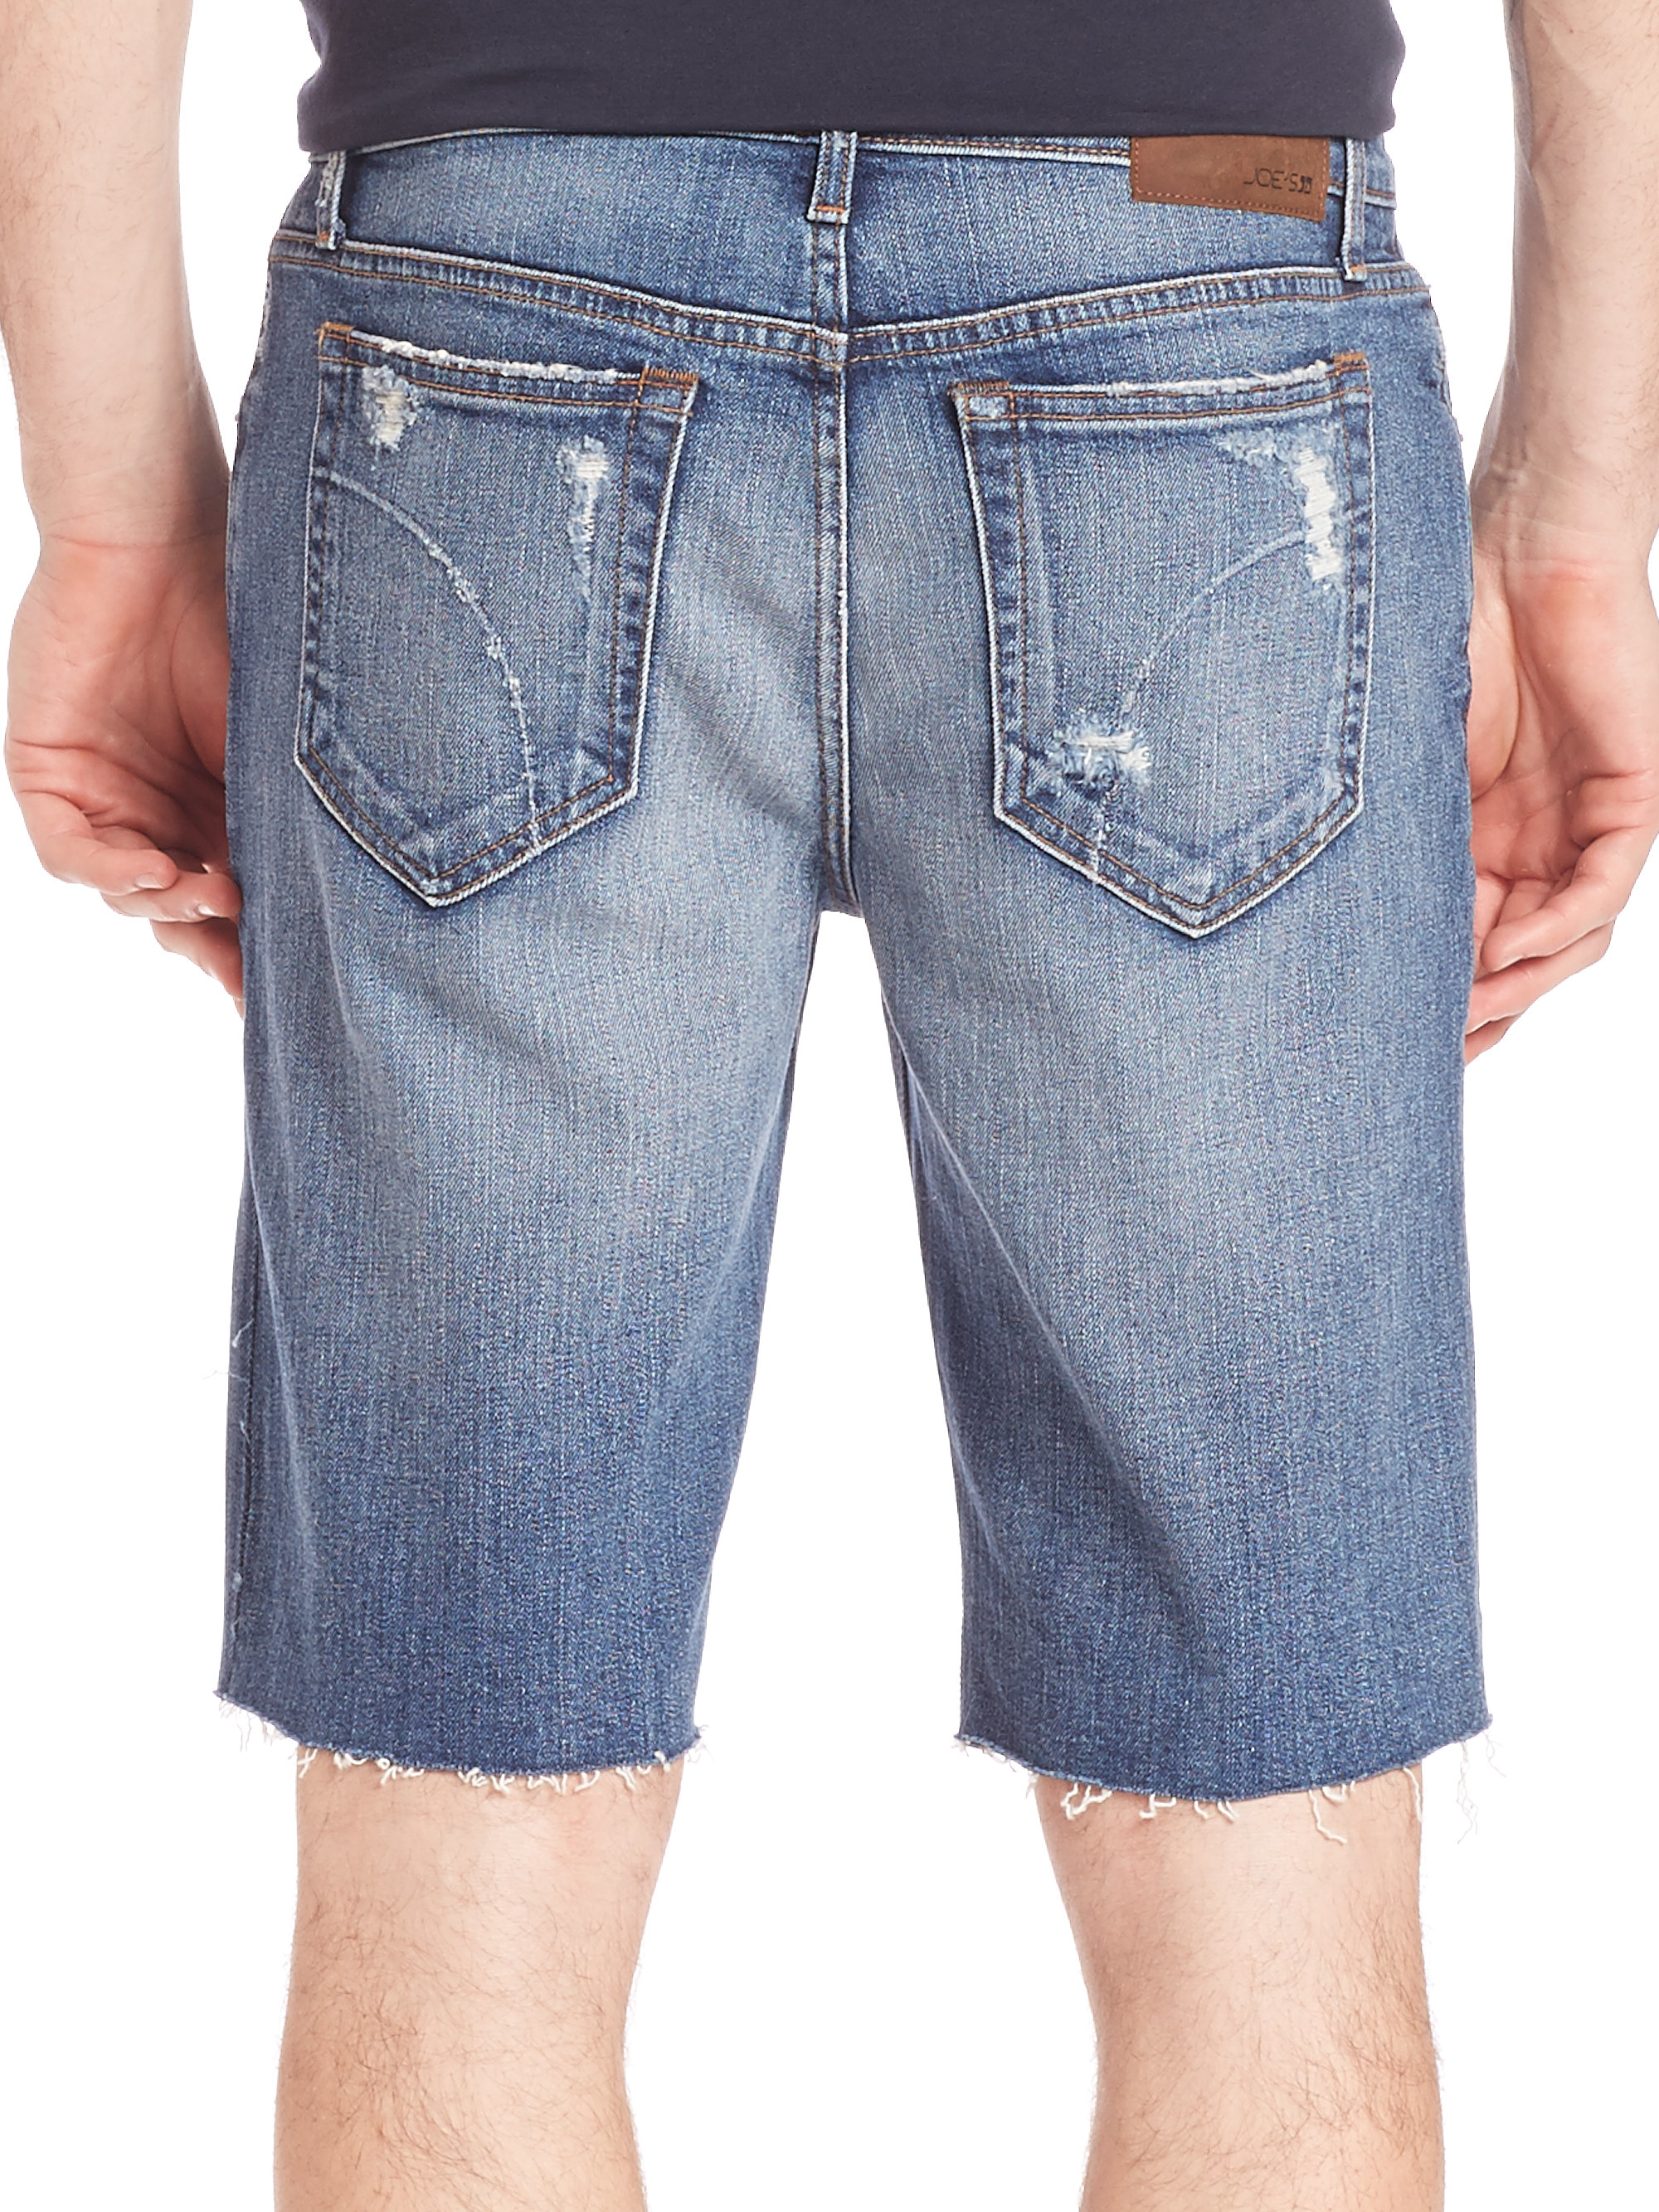 how to make cut off jeans men